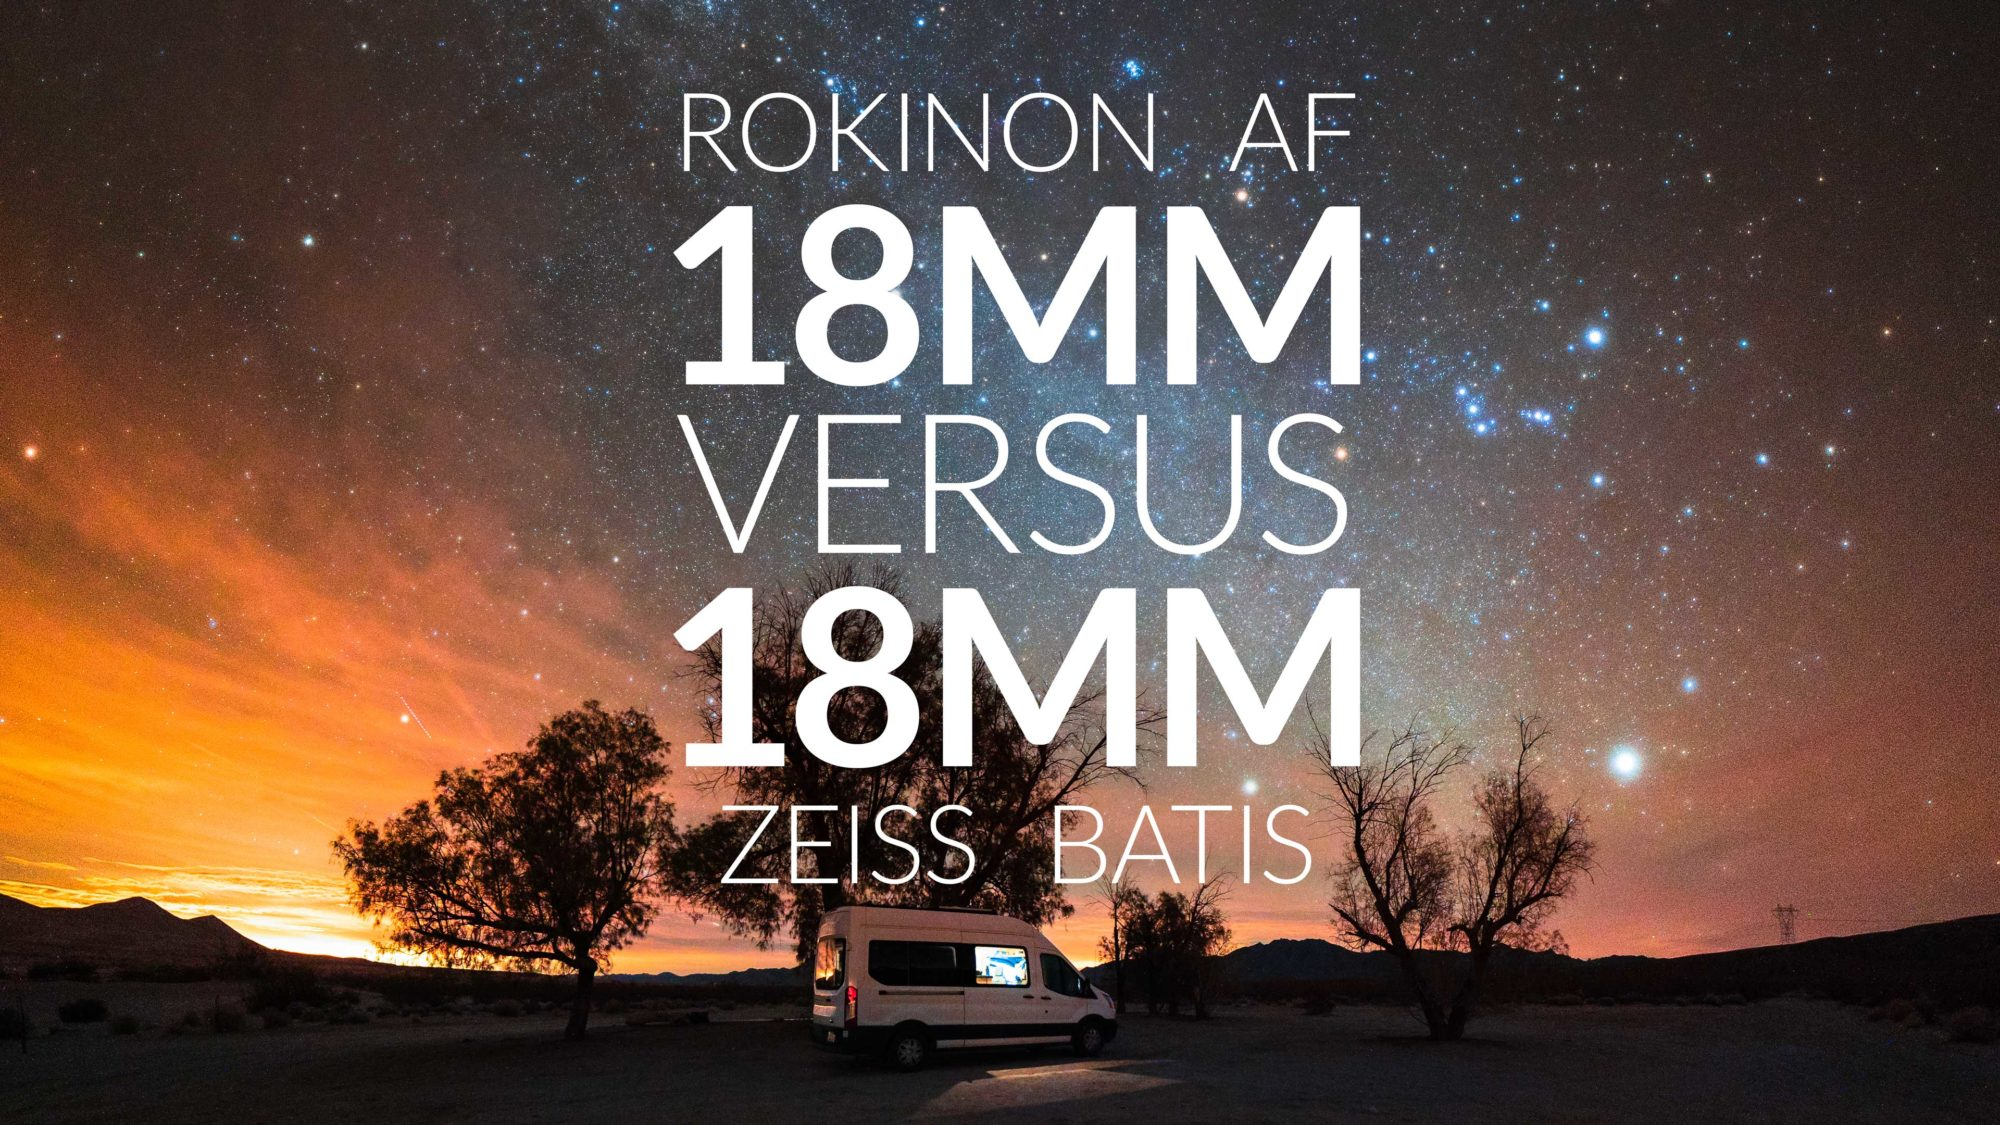 Rokinon Samyang AF 18mm f/2.8 FE vs. Zeiss Batis 18mm f/2.8 Astrophotography Lens Review